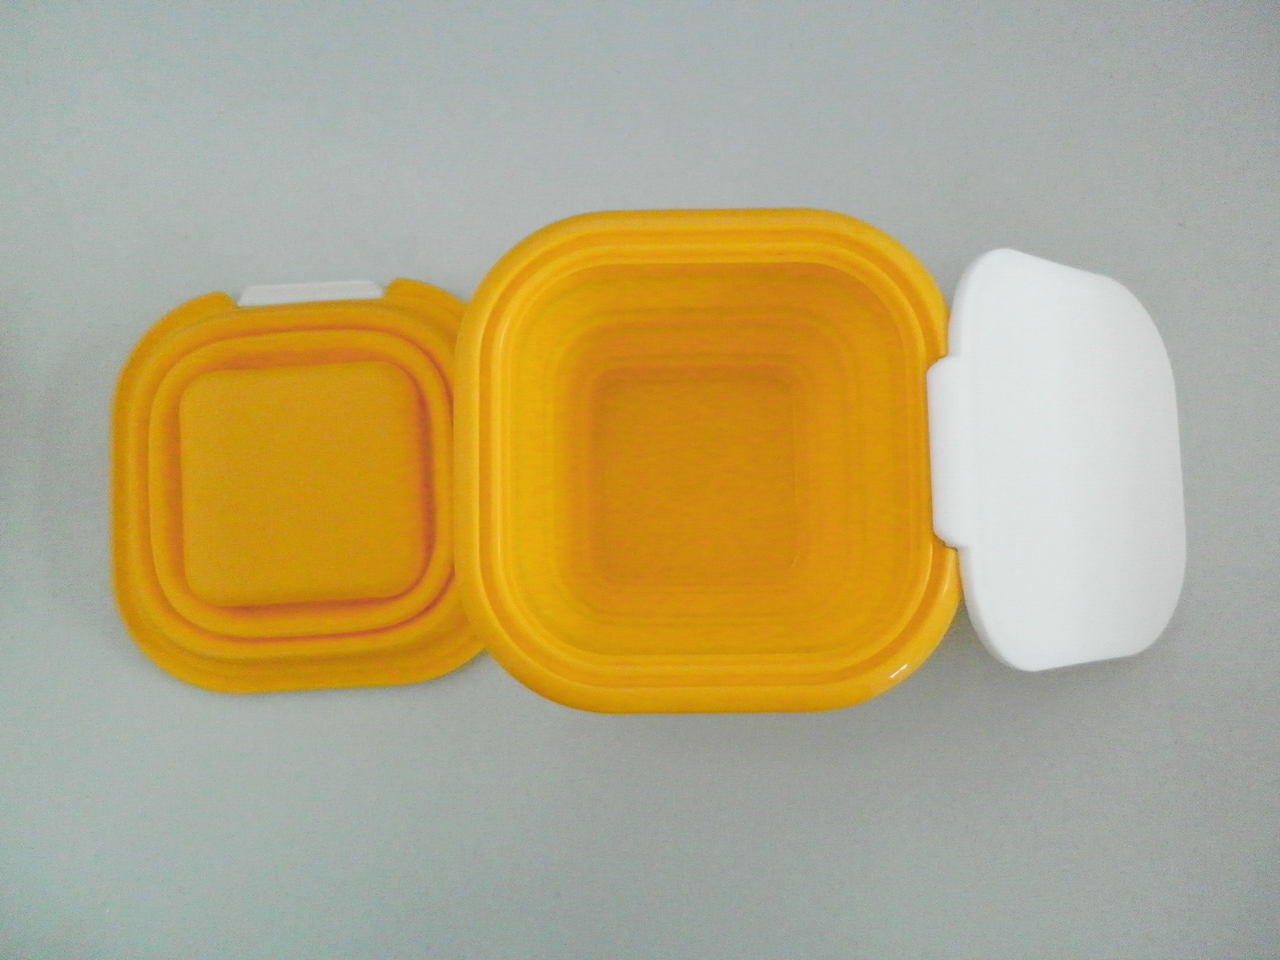 http://www.refinehksilicone.cn/data/images/product/20180418101328_414.jpg